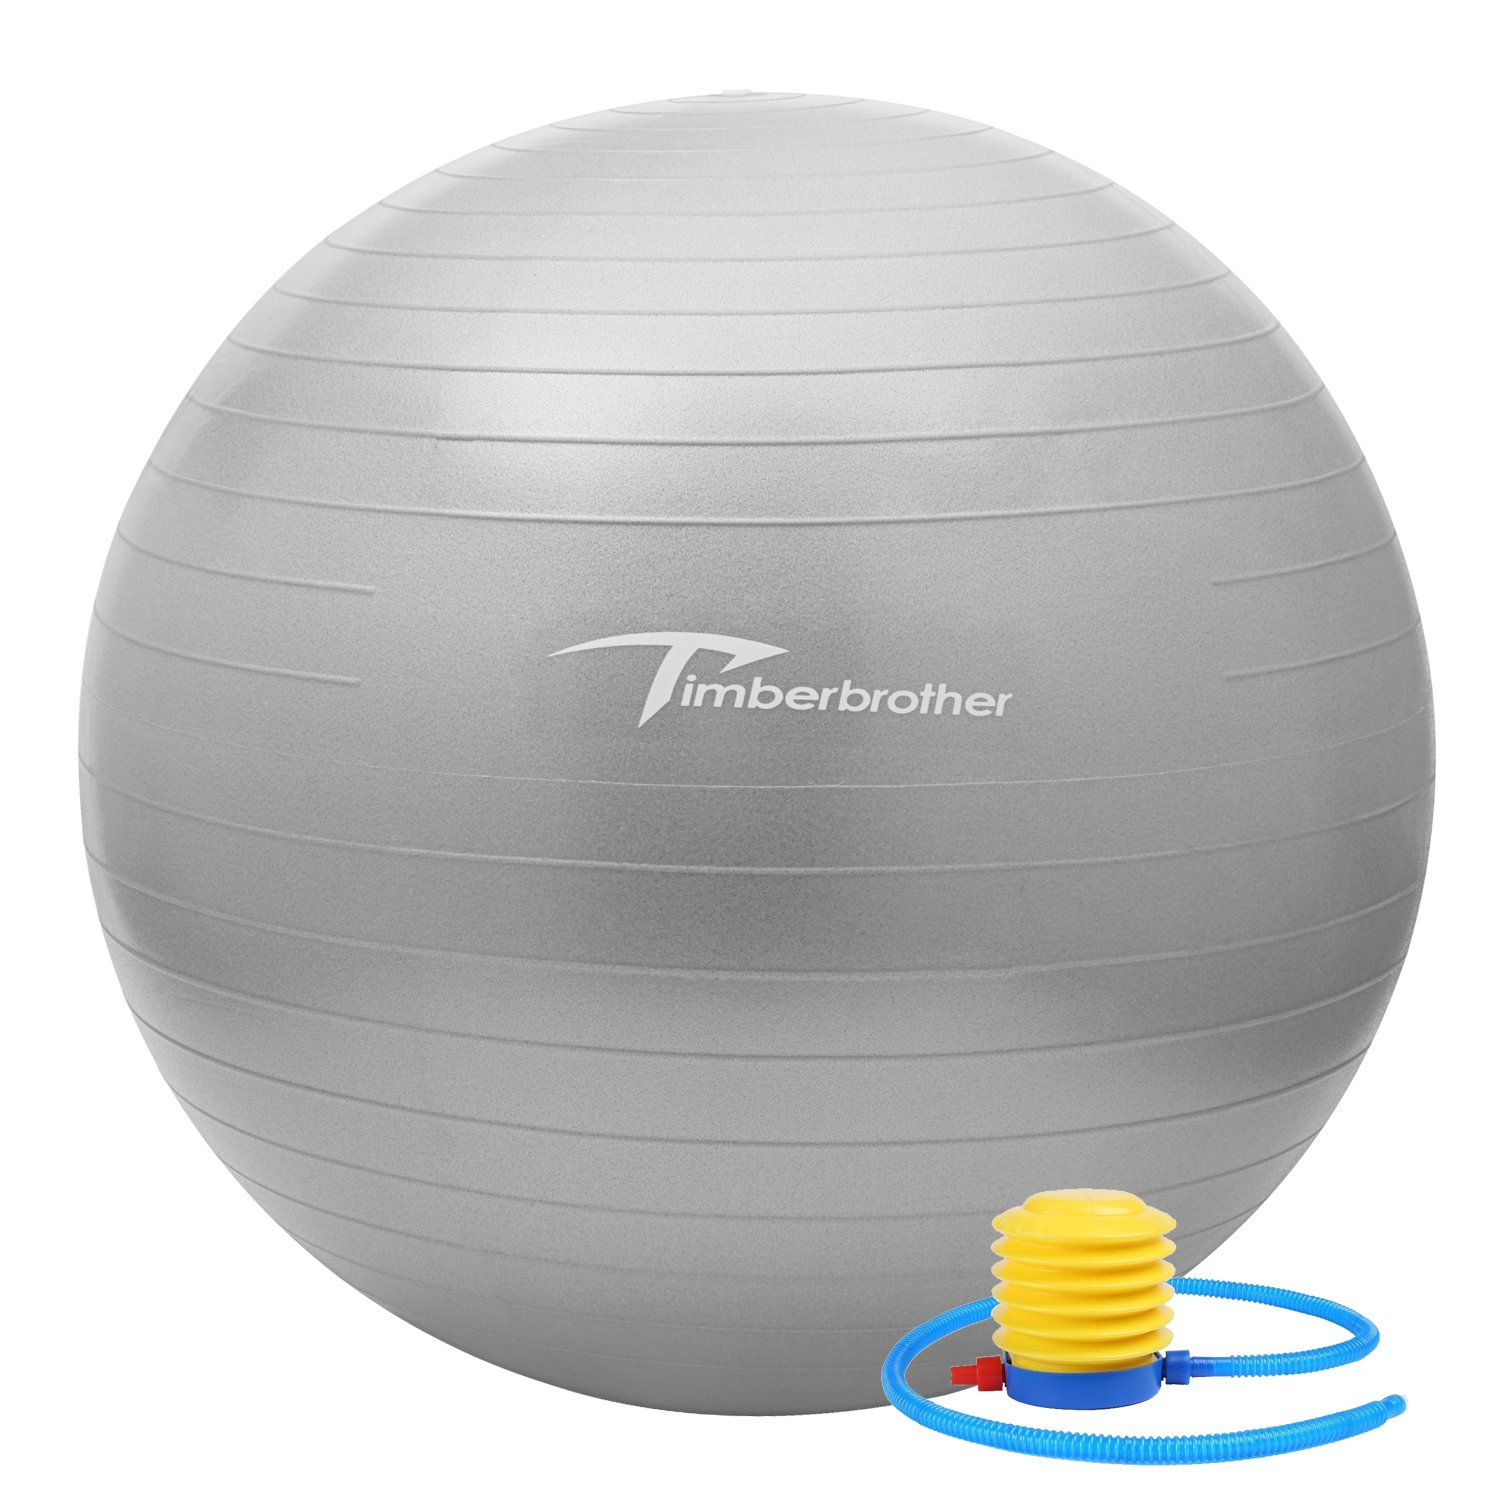 Timberbrother Anti-Burst Exercise Stability Ball/Fitness Ball/Balance Ball with Foot Pump - 55cm/65cm/75cm (Silver, 55cm)